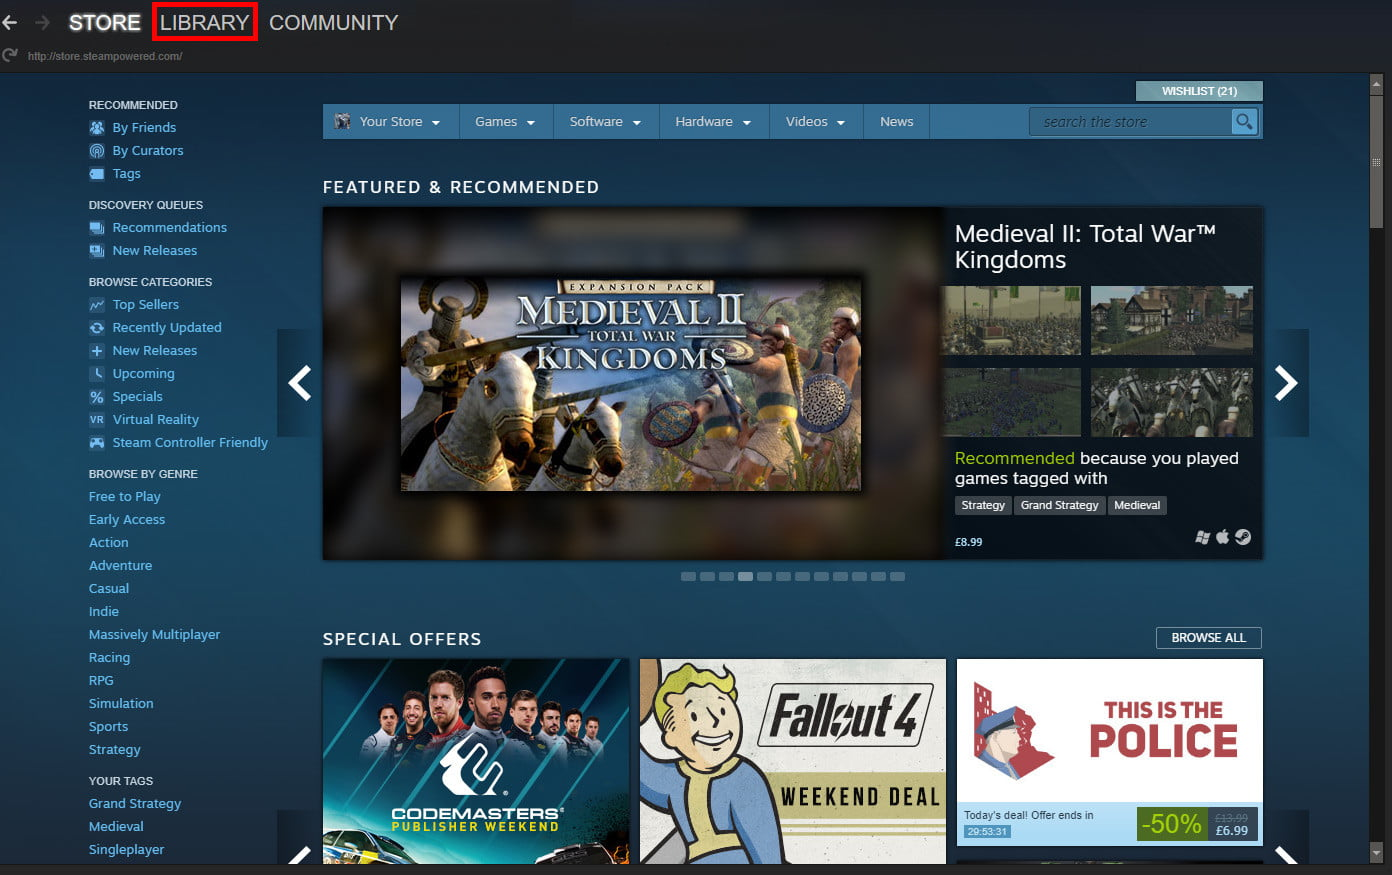 How To Uninstall Steam Games To Save Hard Drive Space